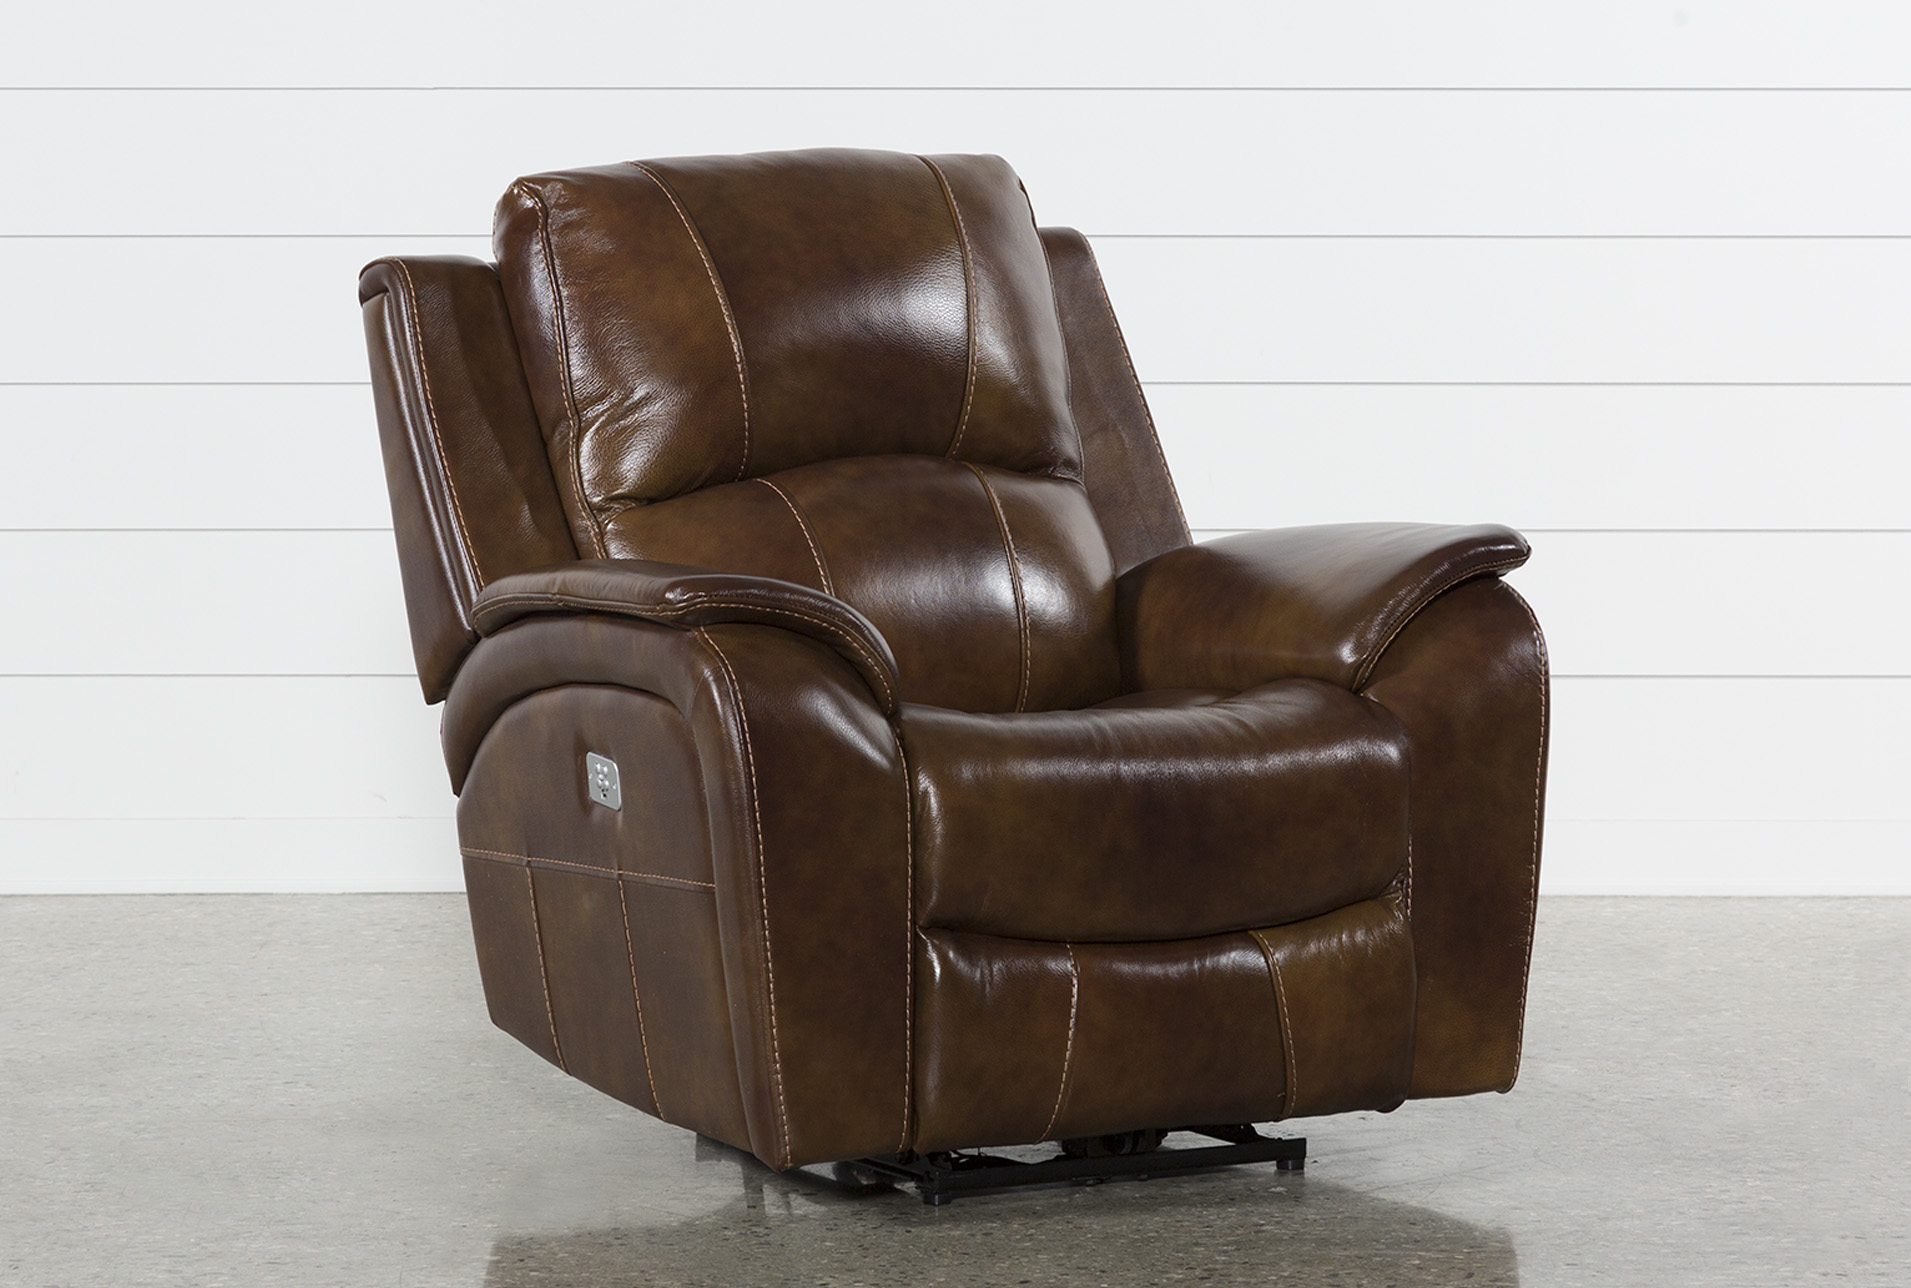 Electric Recliner Leather Chairs Travis Cognac Leather Power Recliner W Power Headrest And Usb